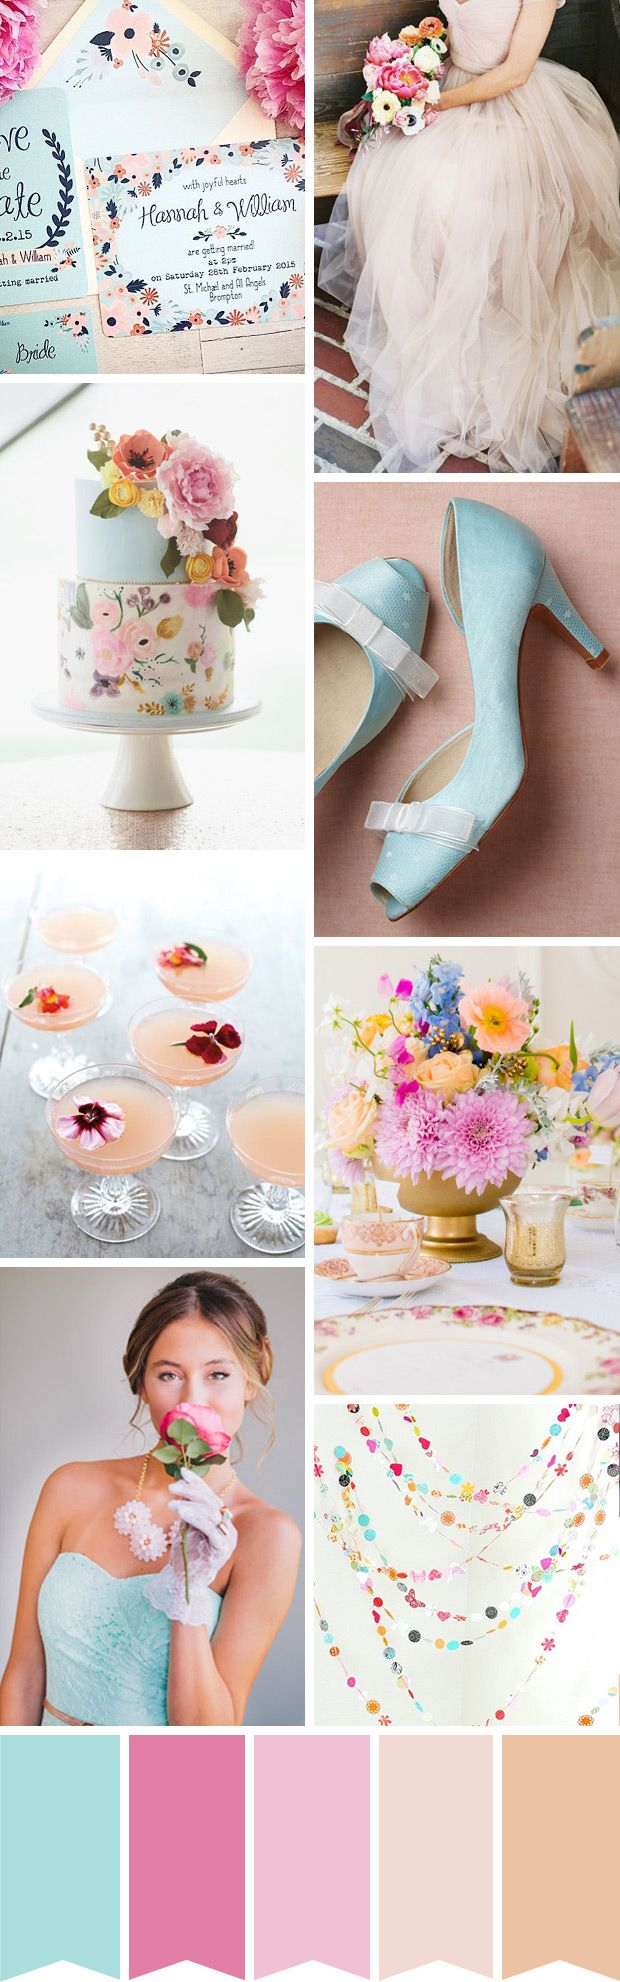 Floral Whimsy - A Pretty Pastel Wedding Palette | www.onefabday.com